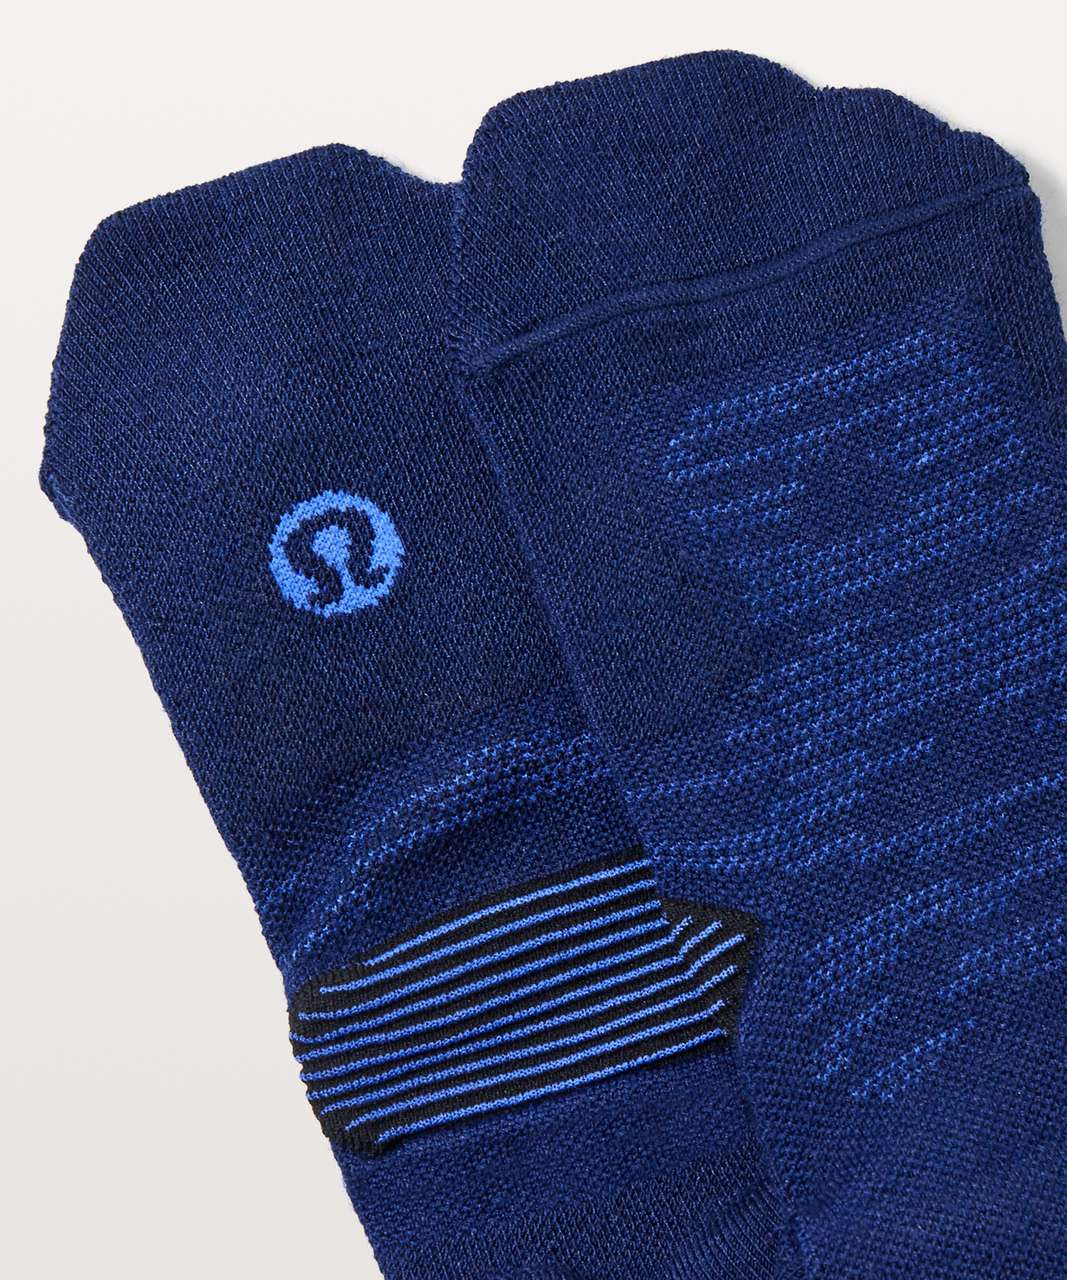 Lululemon Speed Sock Wool - Hero Blue / Blazer Blue